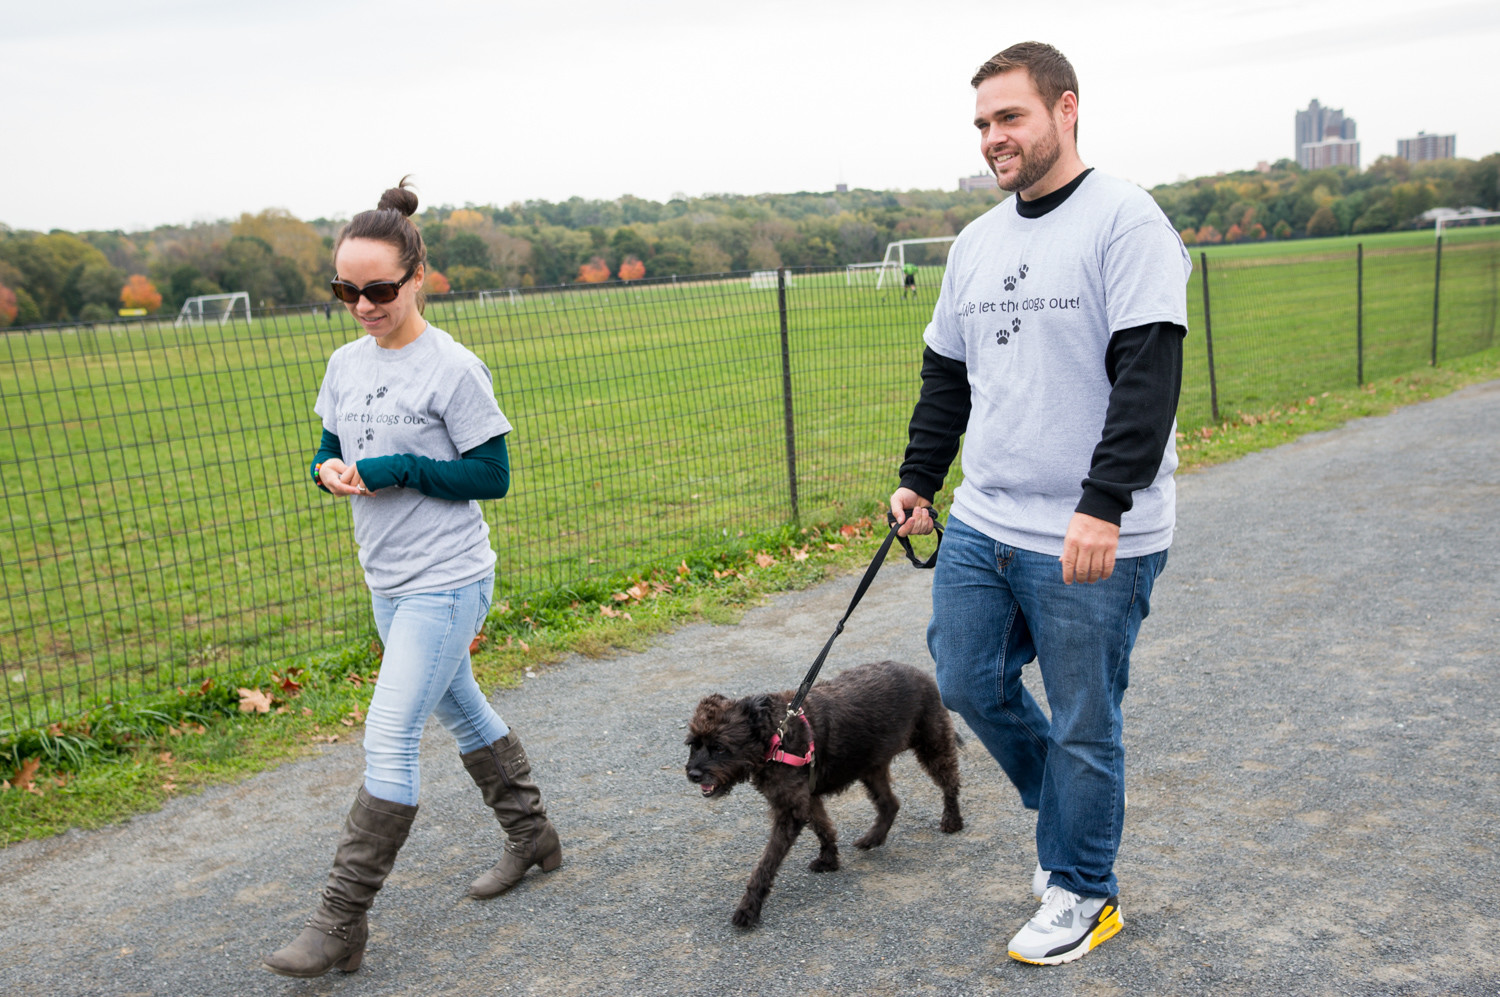 Leslie Centofanti and Chad Goldman offer GPS tracking as part of their dog walking services. They use an app called Pet Check, which allows dog owners to check on the length, location and duration of their dogs' walks.